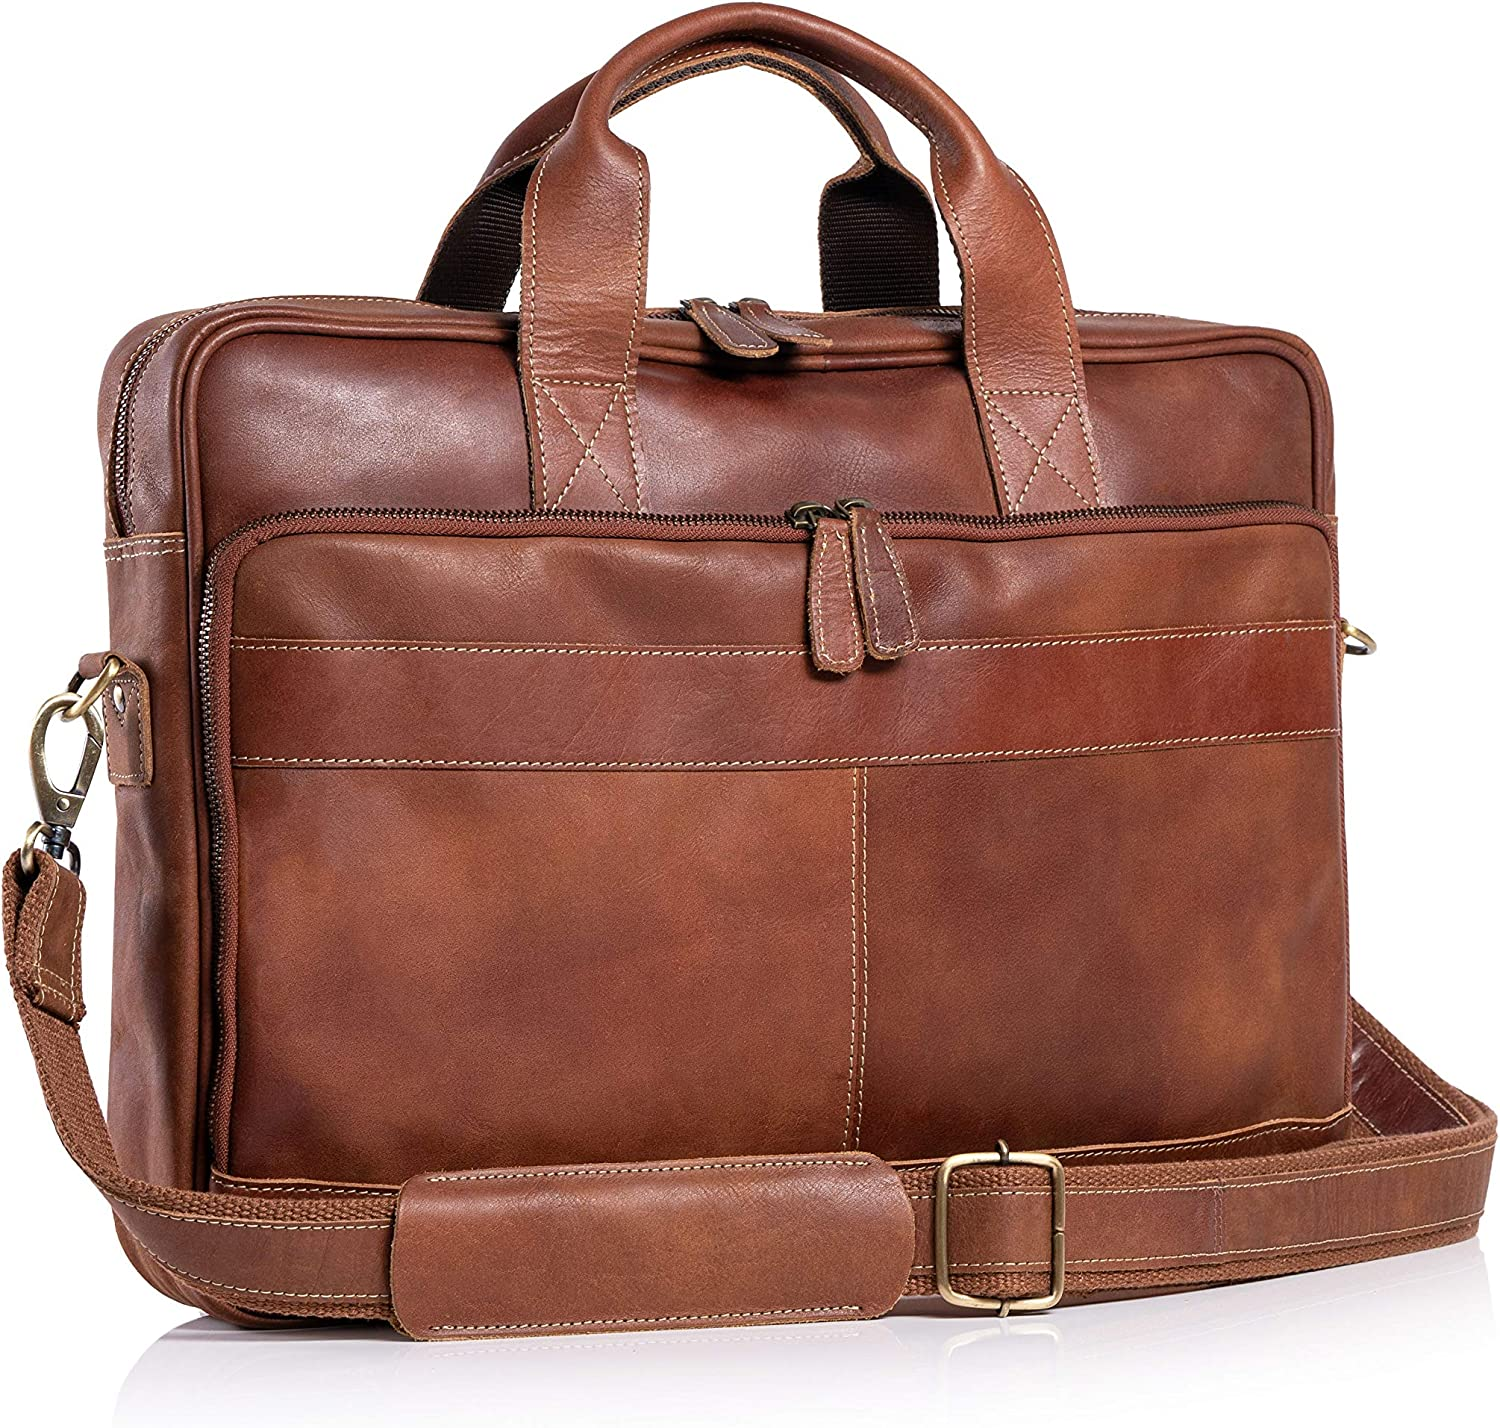 KomalC 16 Inch Leather briefcases Laptop Messenger Bags for Men and Women Best Office School College Satchel Bag